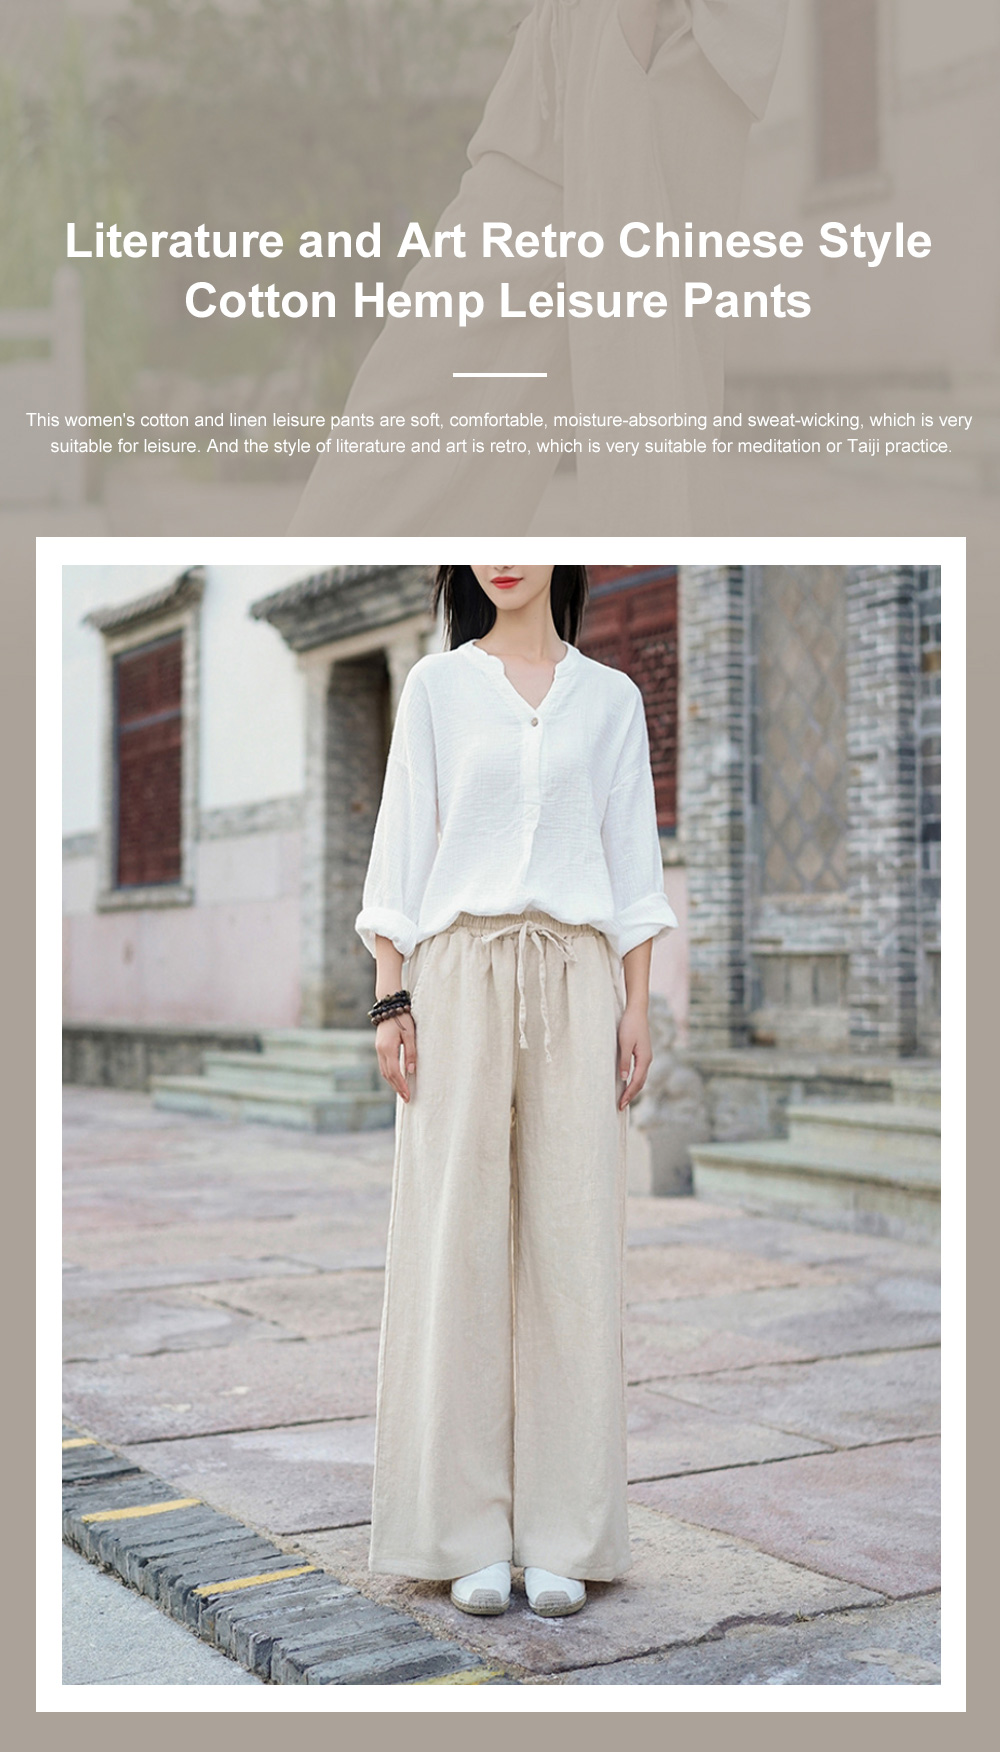 Literature Art Retro Chinese Style Cotton Hemp Leisure Pants Meditation Practice Pant Taiji Pants Linen Pants Women's Wide Leg Pants 0